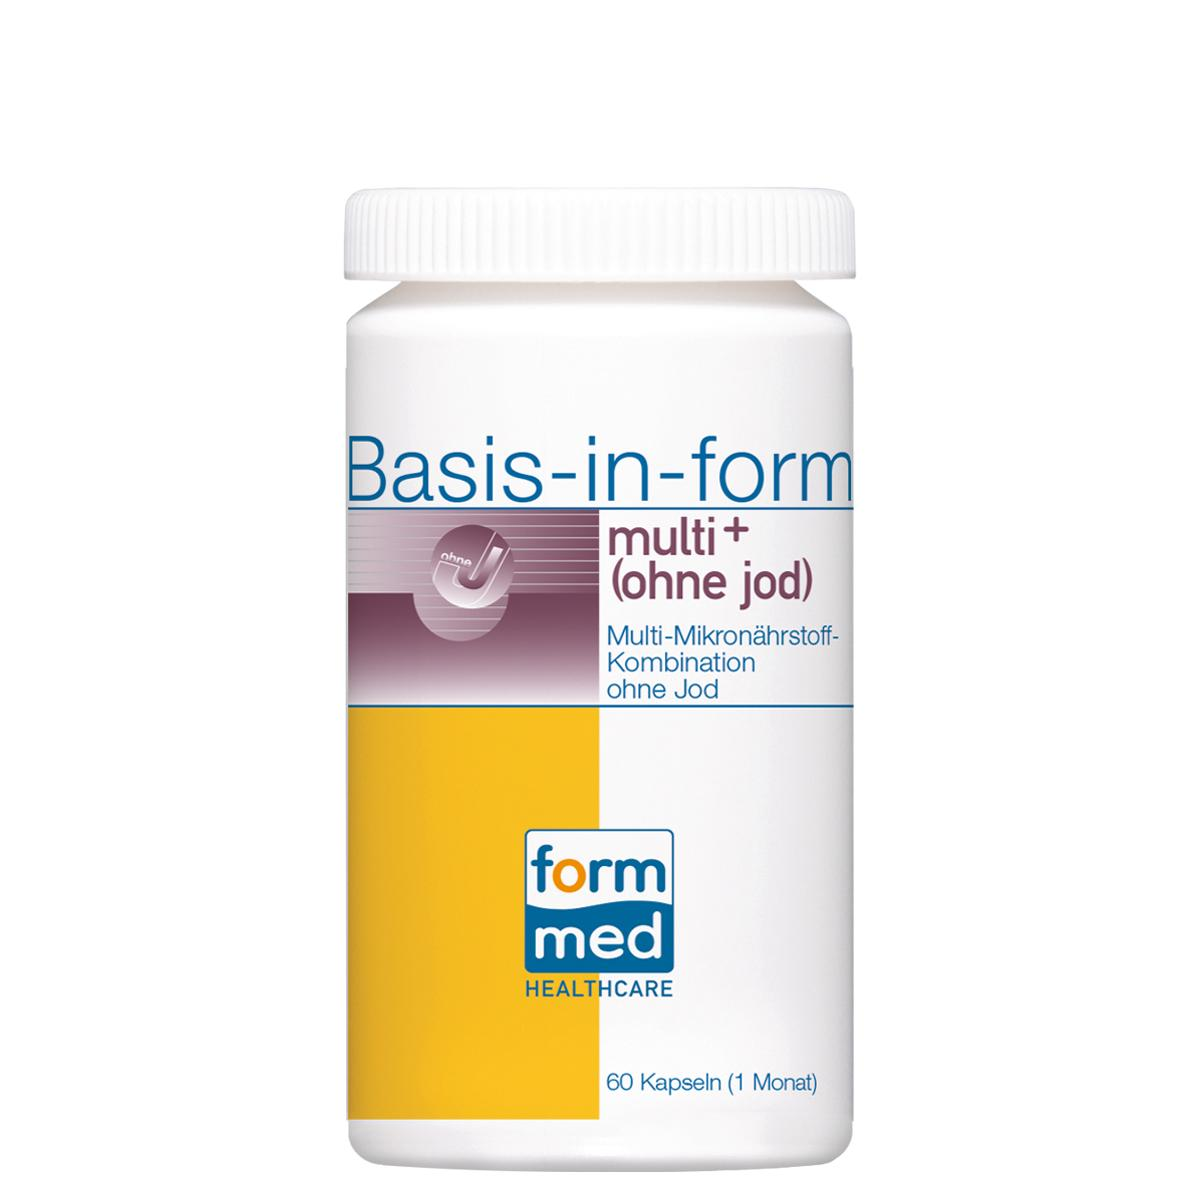 Basis-in-form® multi+ (ohne jod)